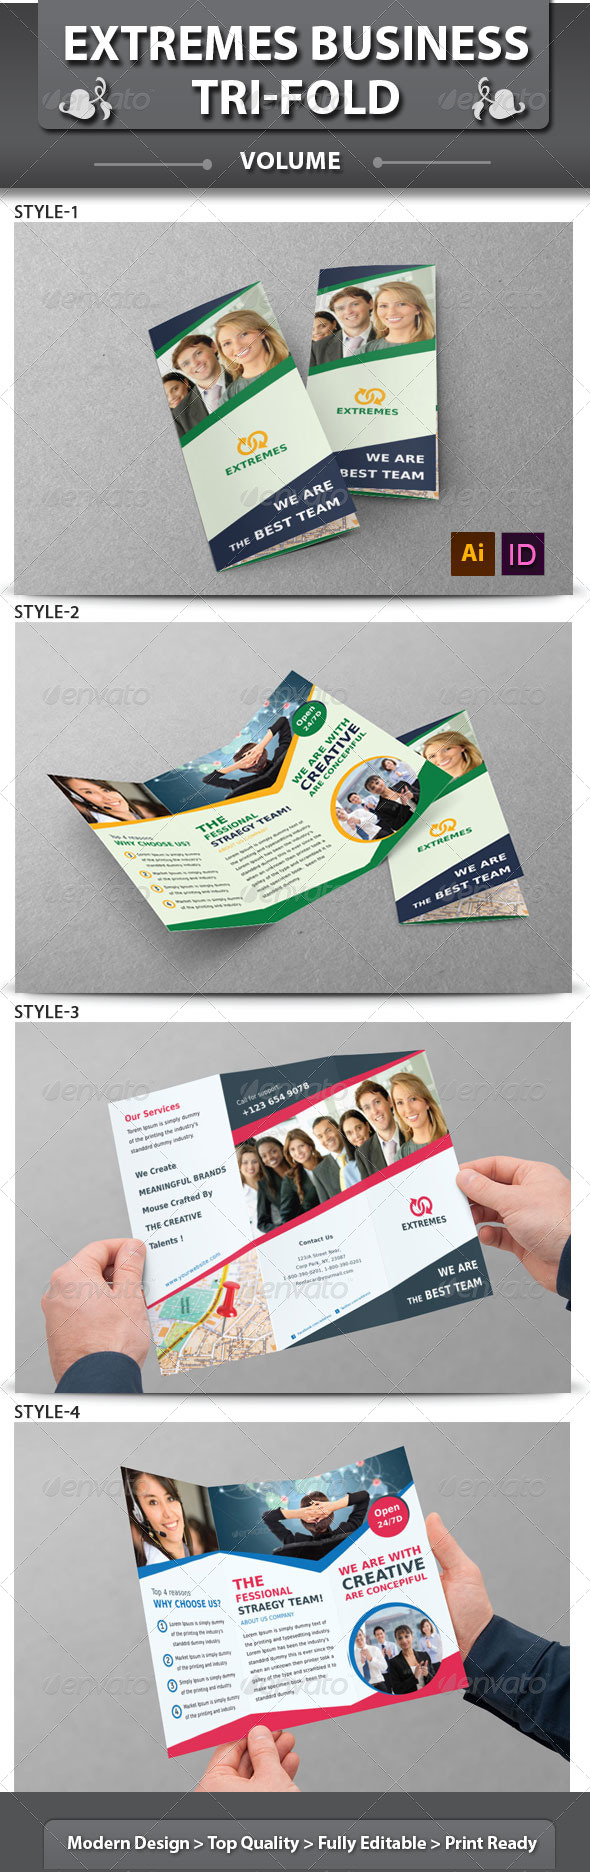 GraphicRiver Extremes Business TriFold Brochure v1 6258207